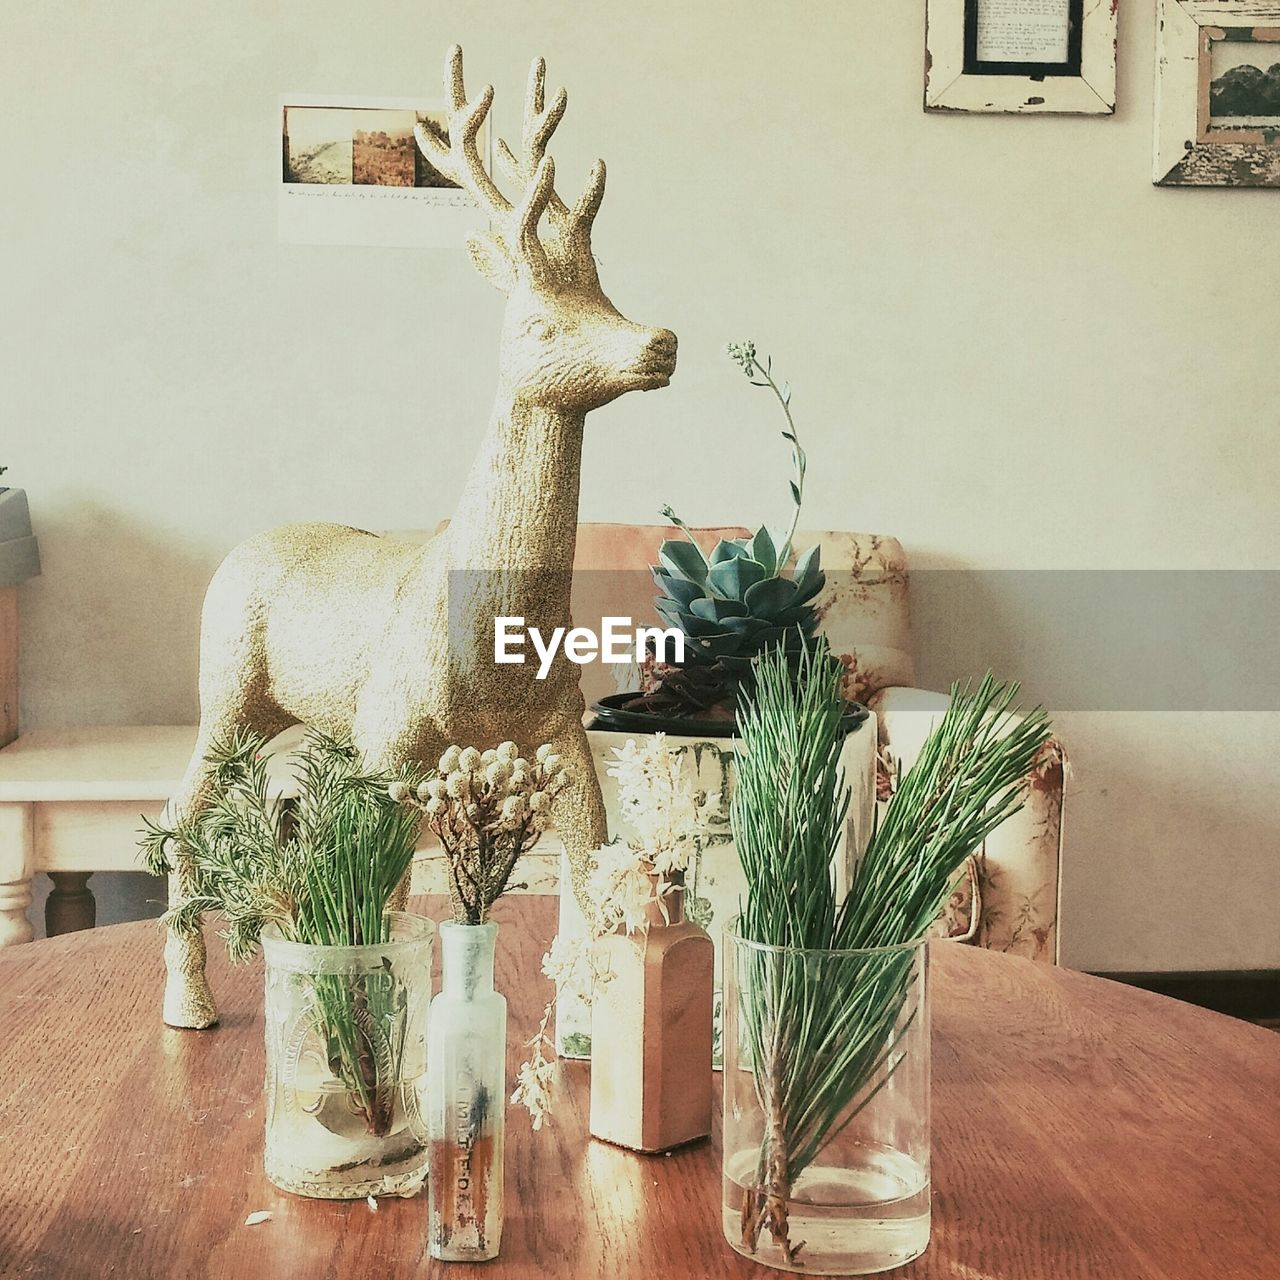 Reindeer Statue Amidst Plant Vases On Coffee Table In Living Room